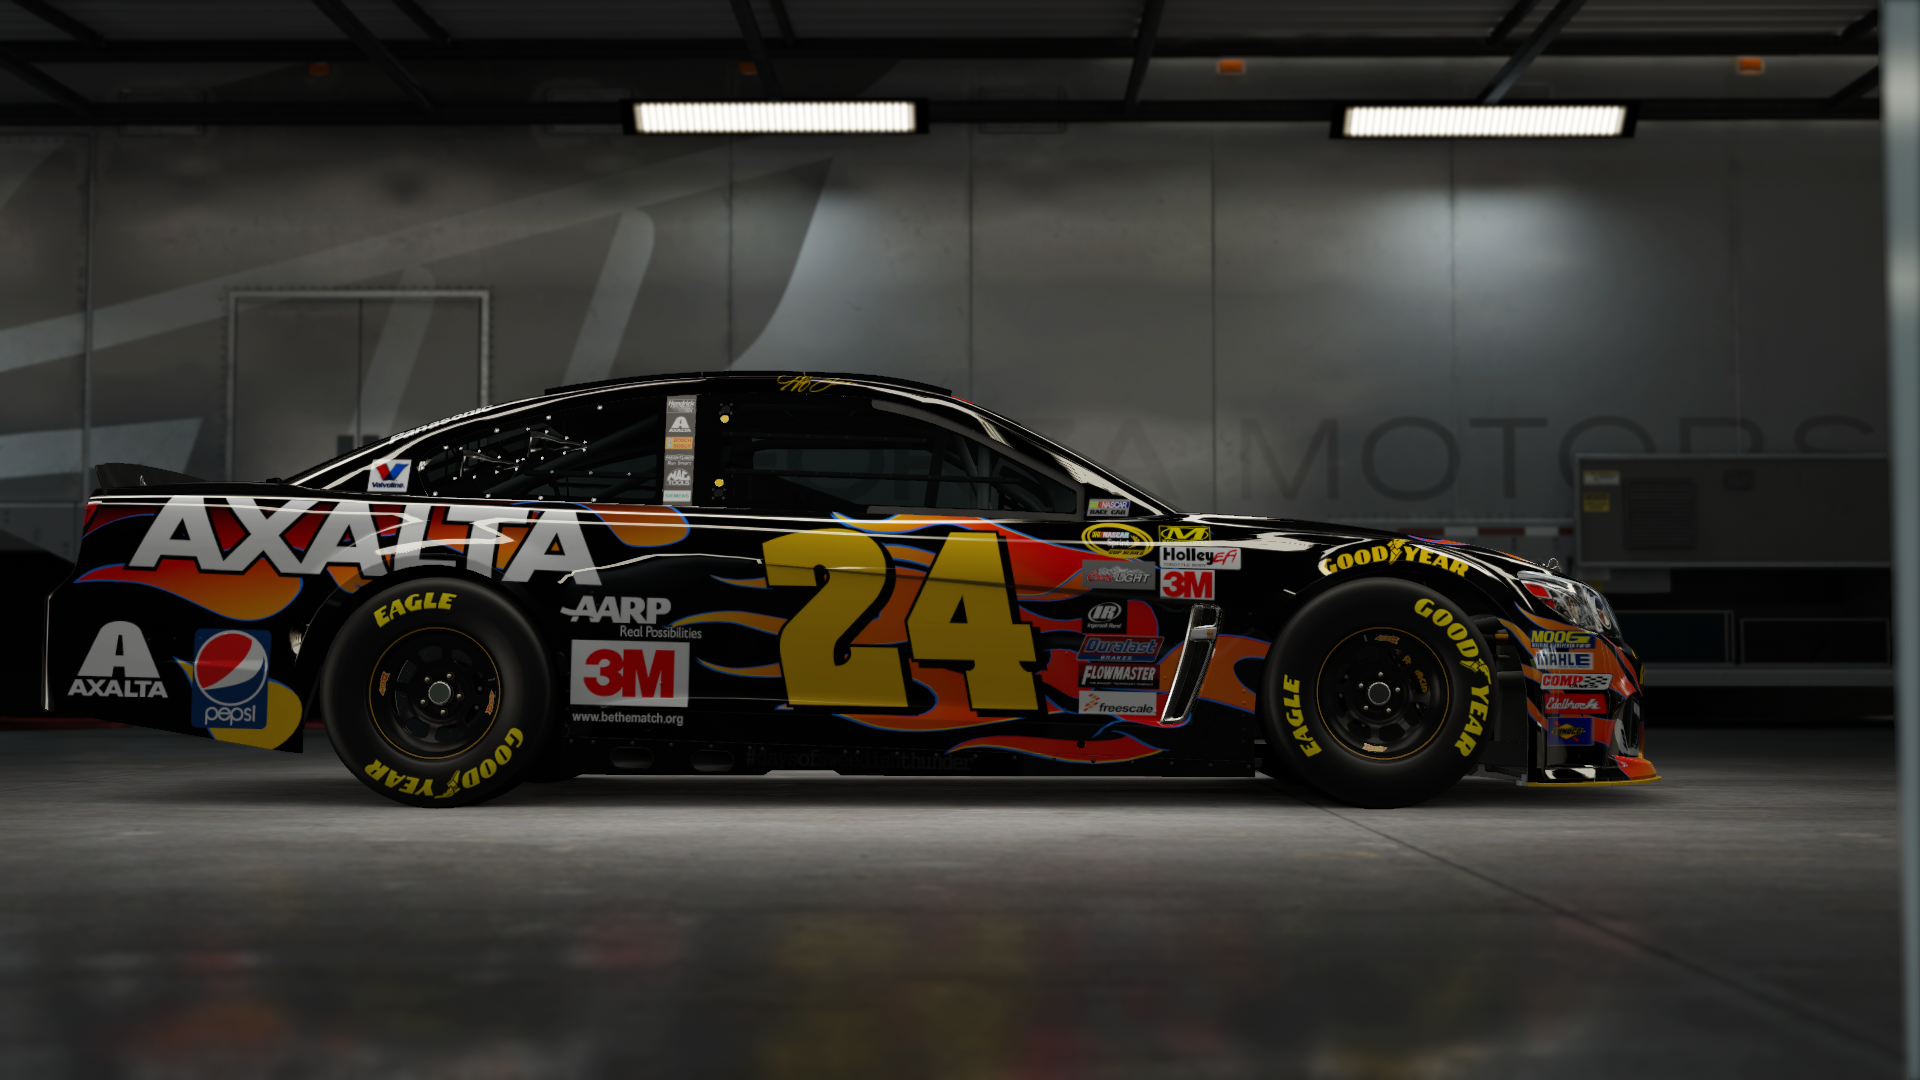 On the #24 Hendrick Motorsports NAPA Super Sport, Made by SweedishThunder